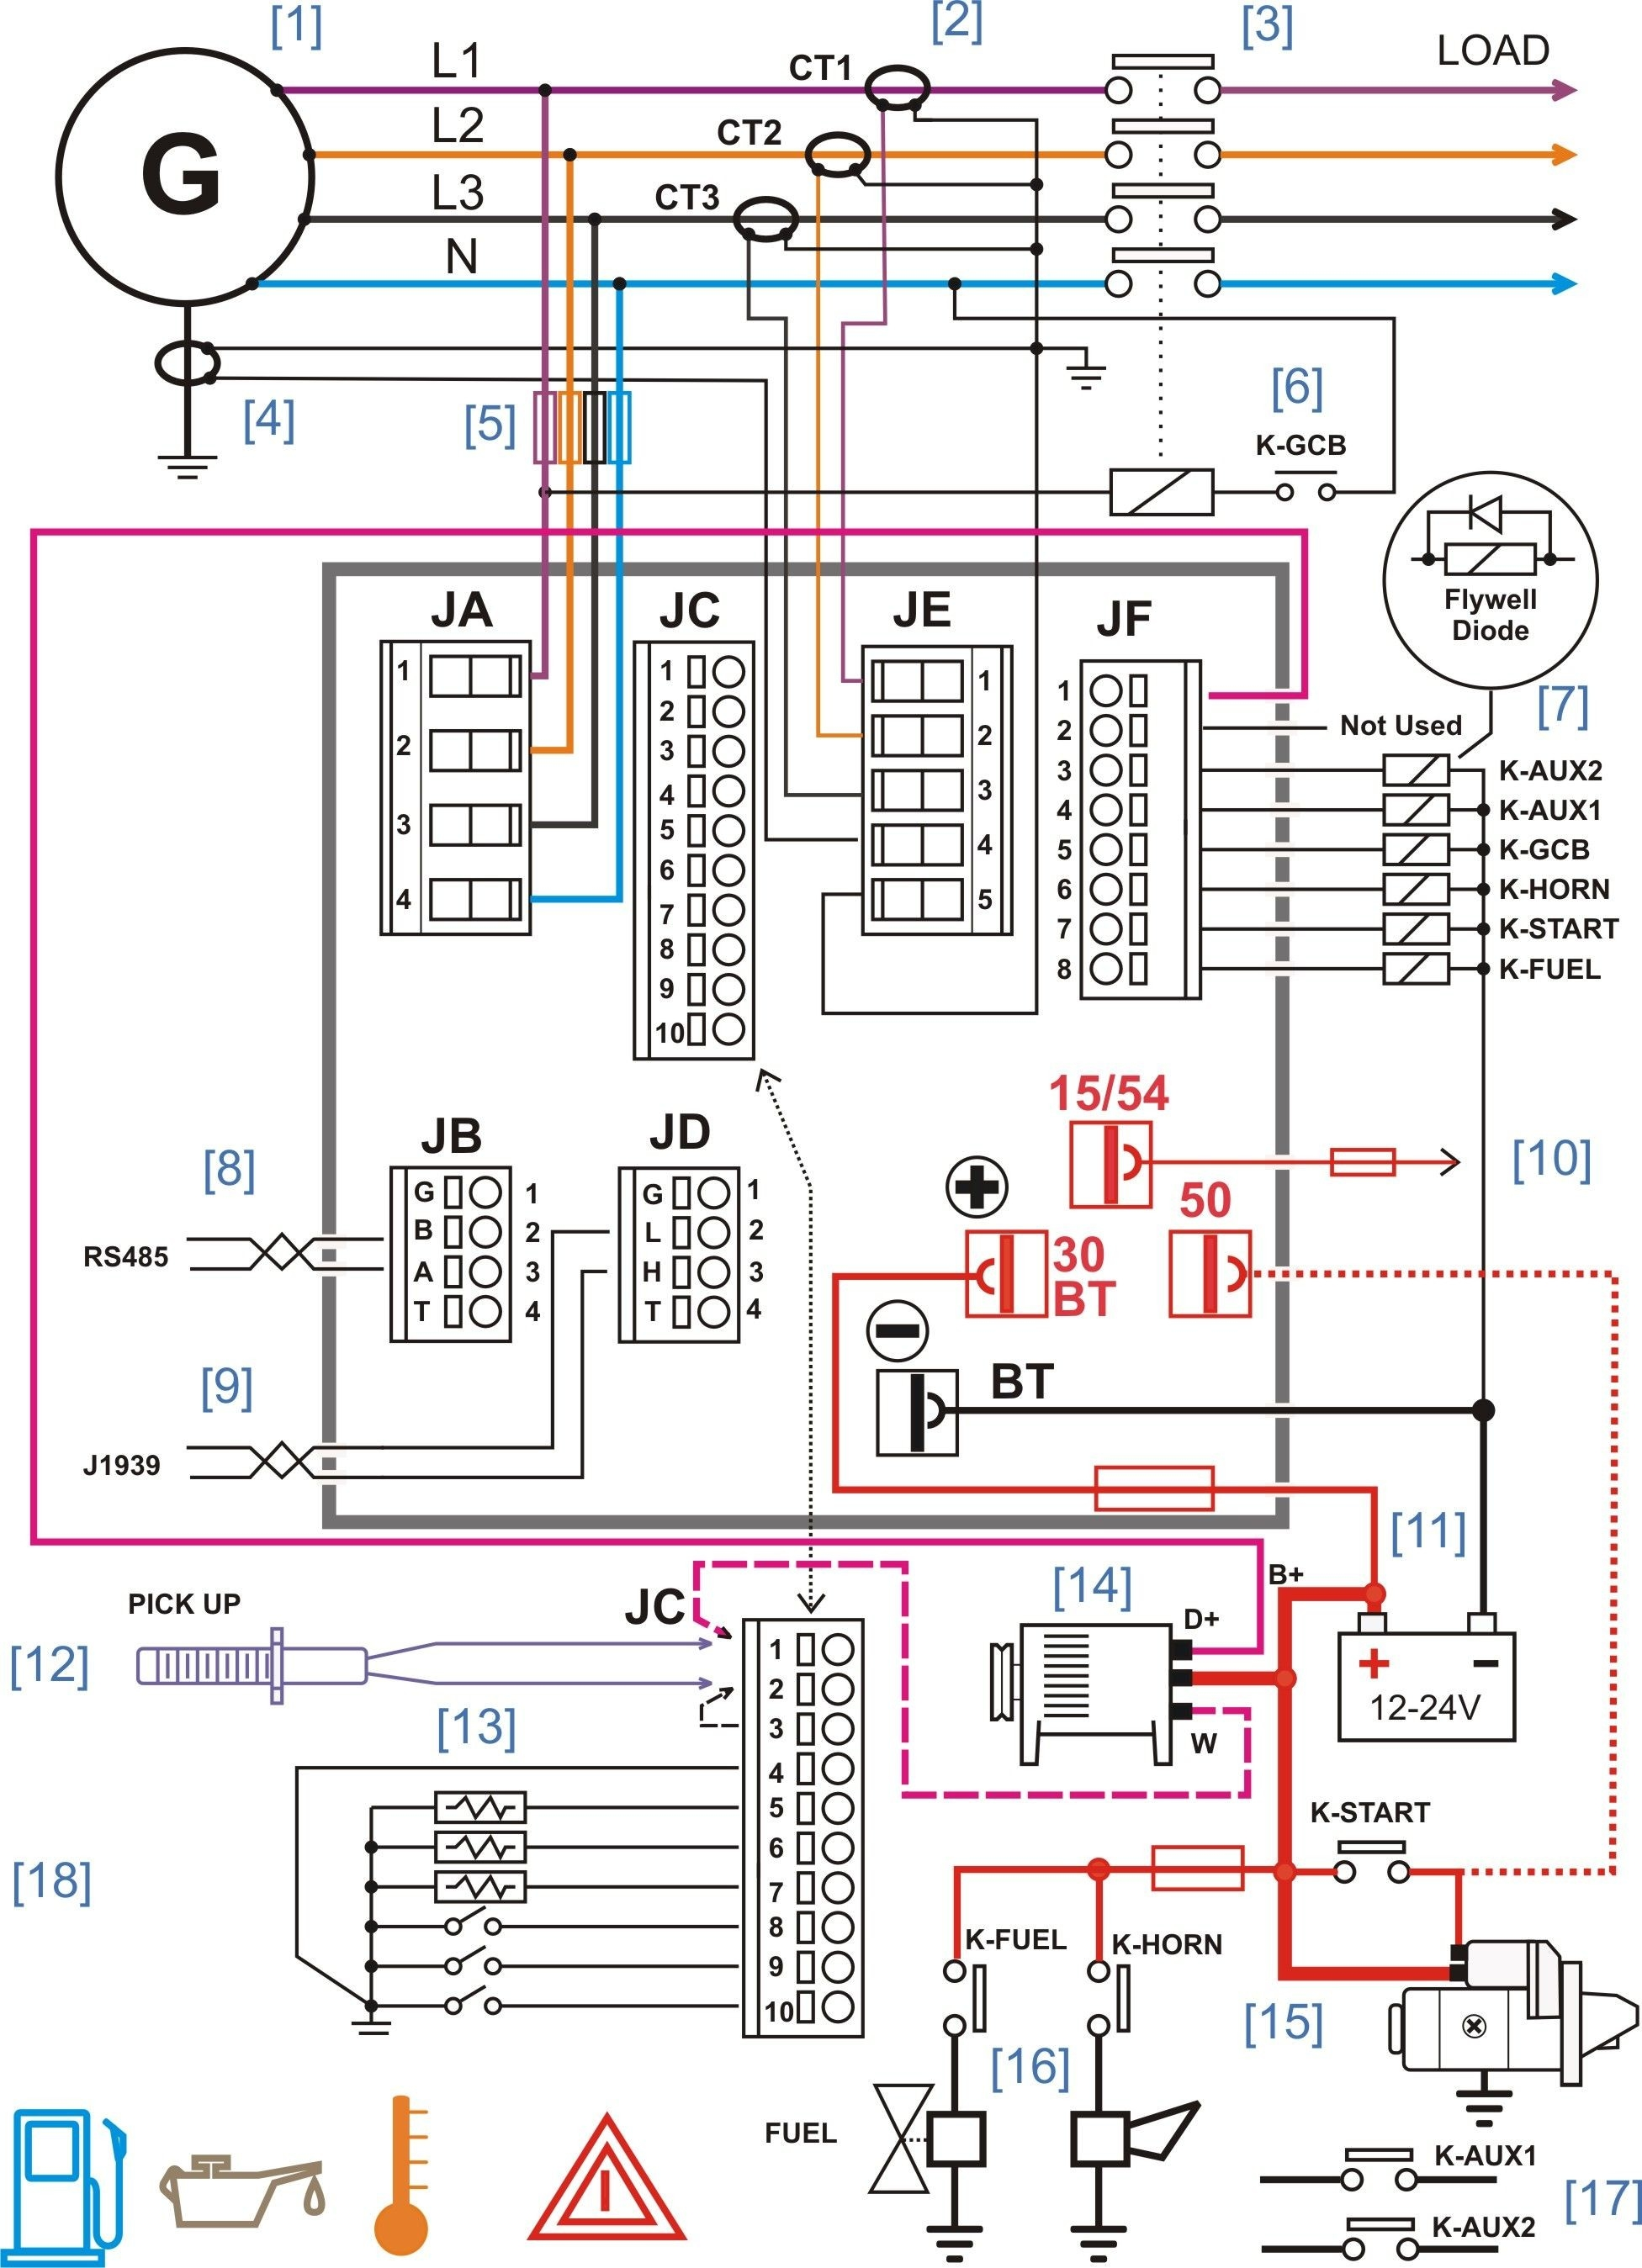 hight resolution of lighting control panel wiring diagram wiring diagram for wolf generator best diesel generator control panel